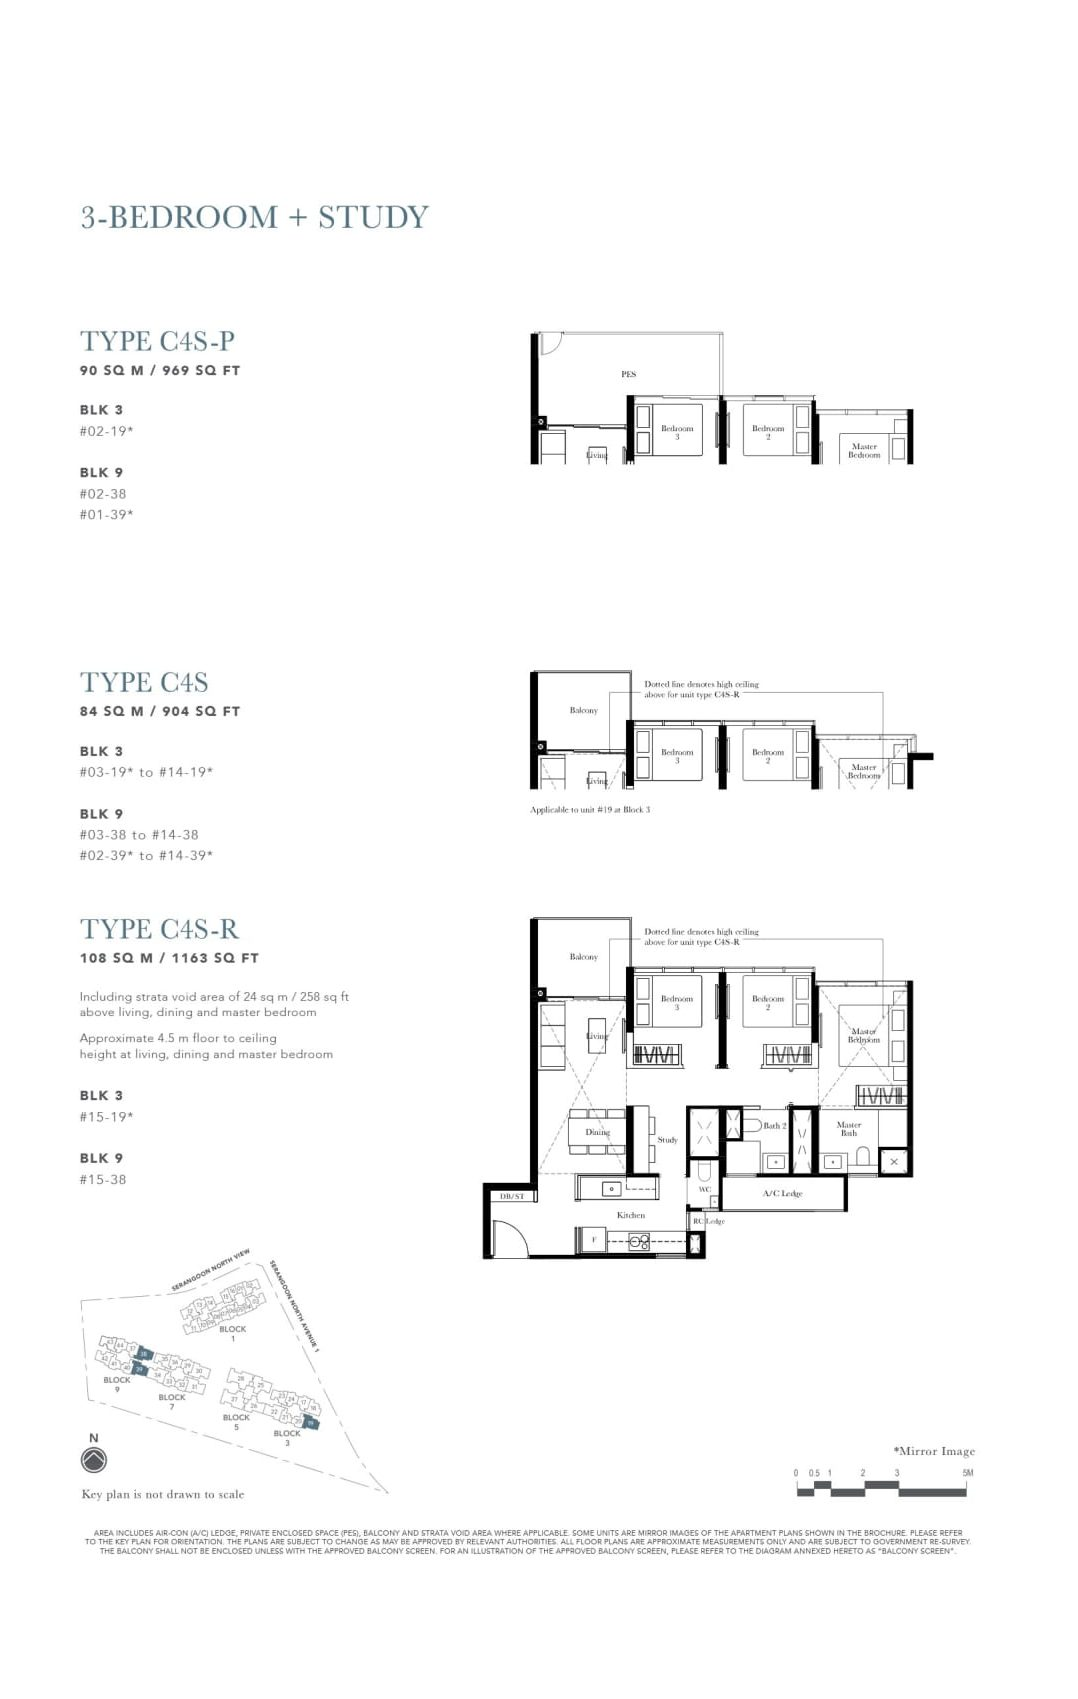 The Garden Residences' three-bedroom + study types